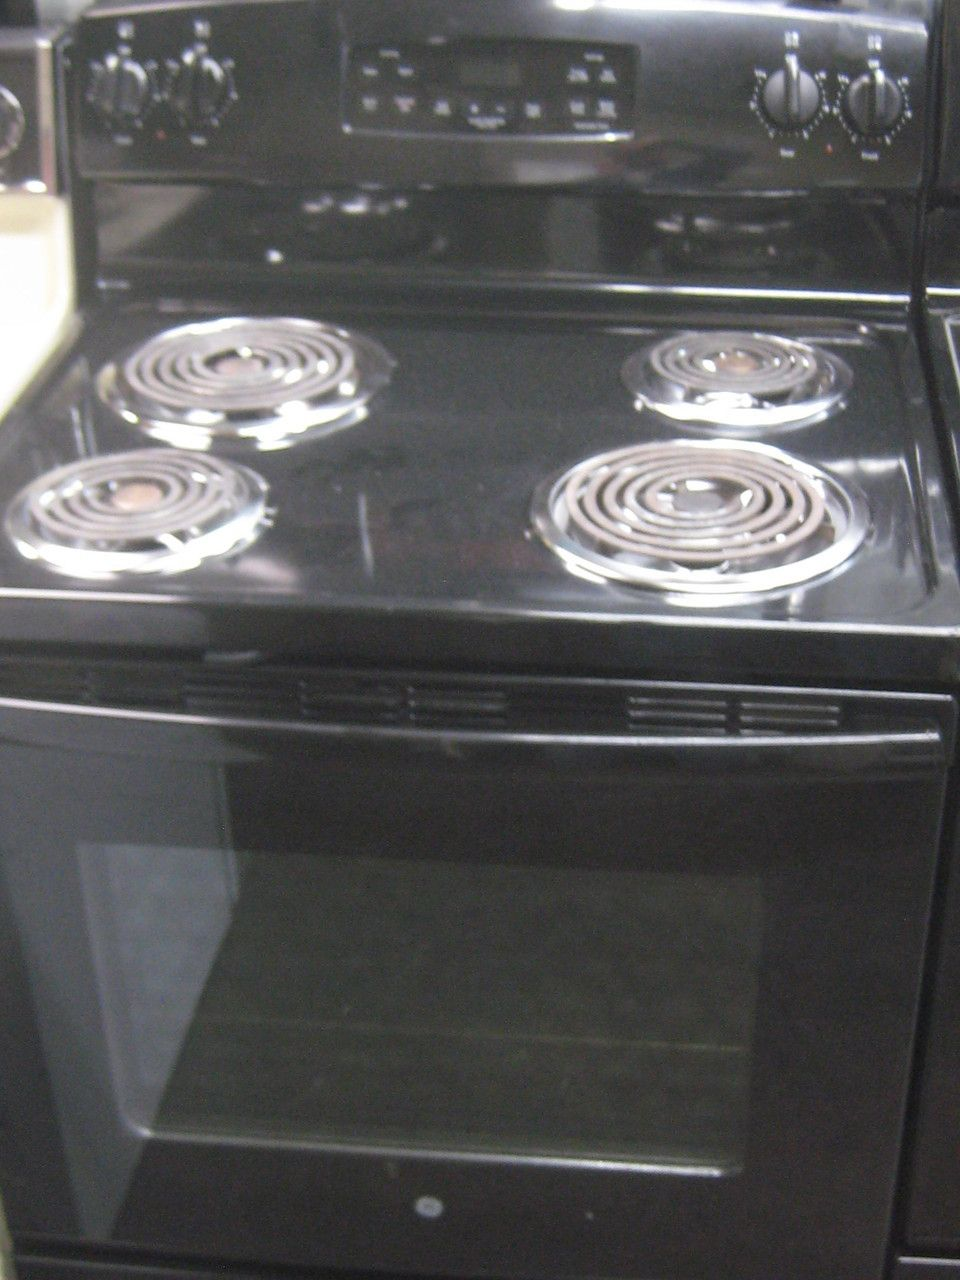 Appliance City - GE SPECTRA 30 INCH FREE STANDING GAS RANGE 4 ...